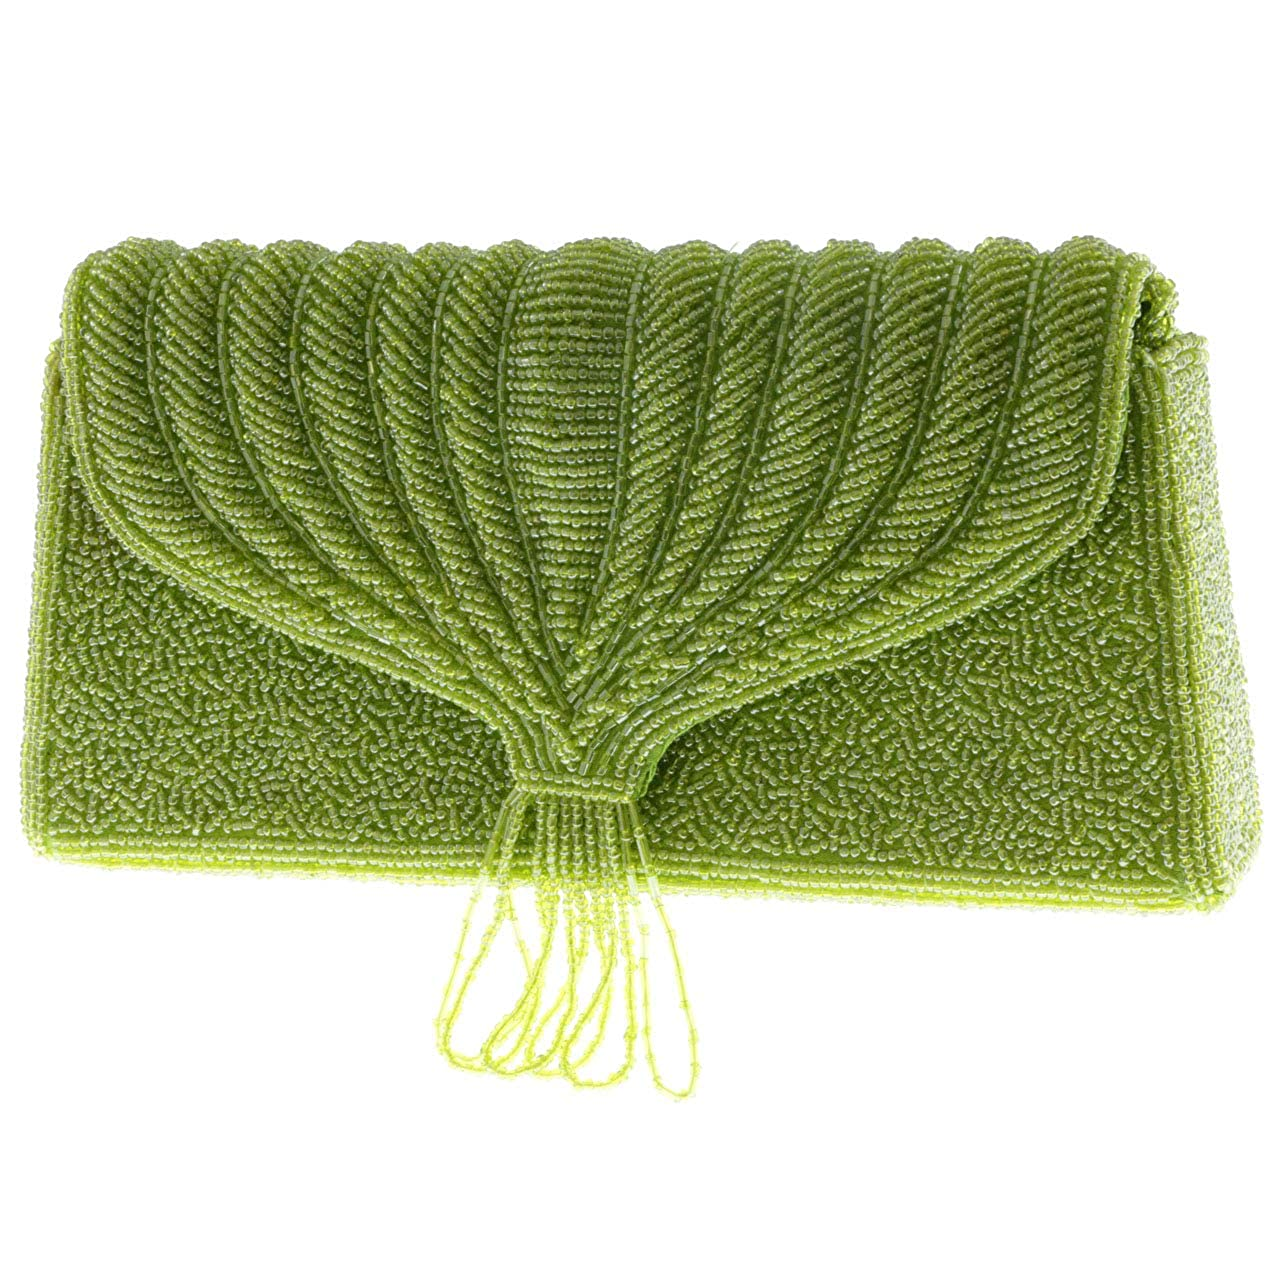 59ebf261eb Mi Amore Clutch-Purse Green/Silver-Tone: Handbags: Amazon.com